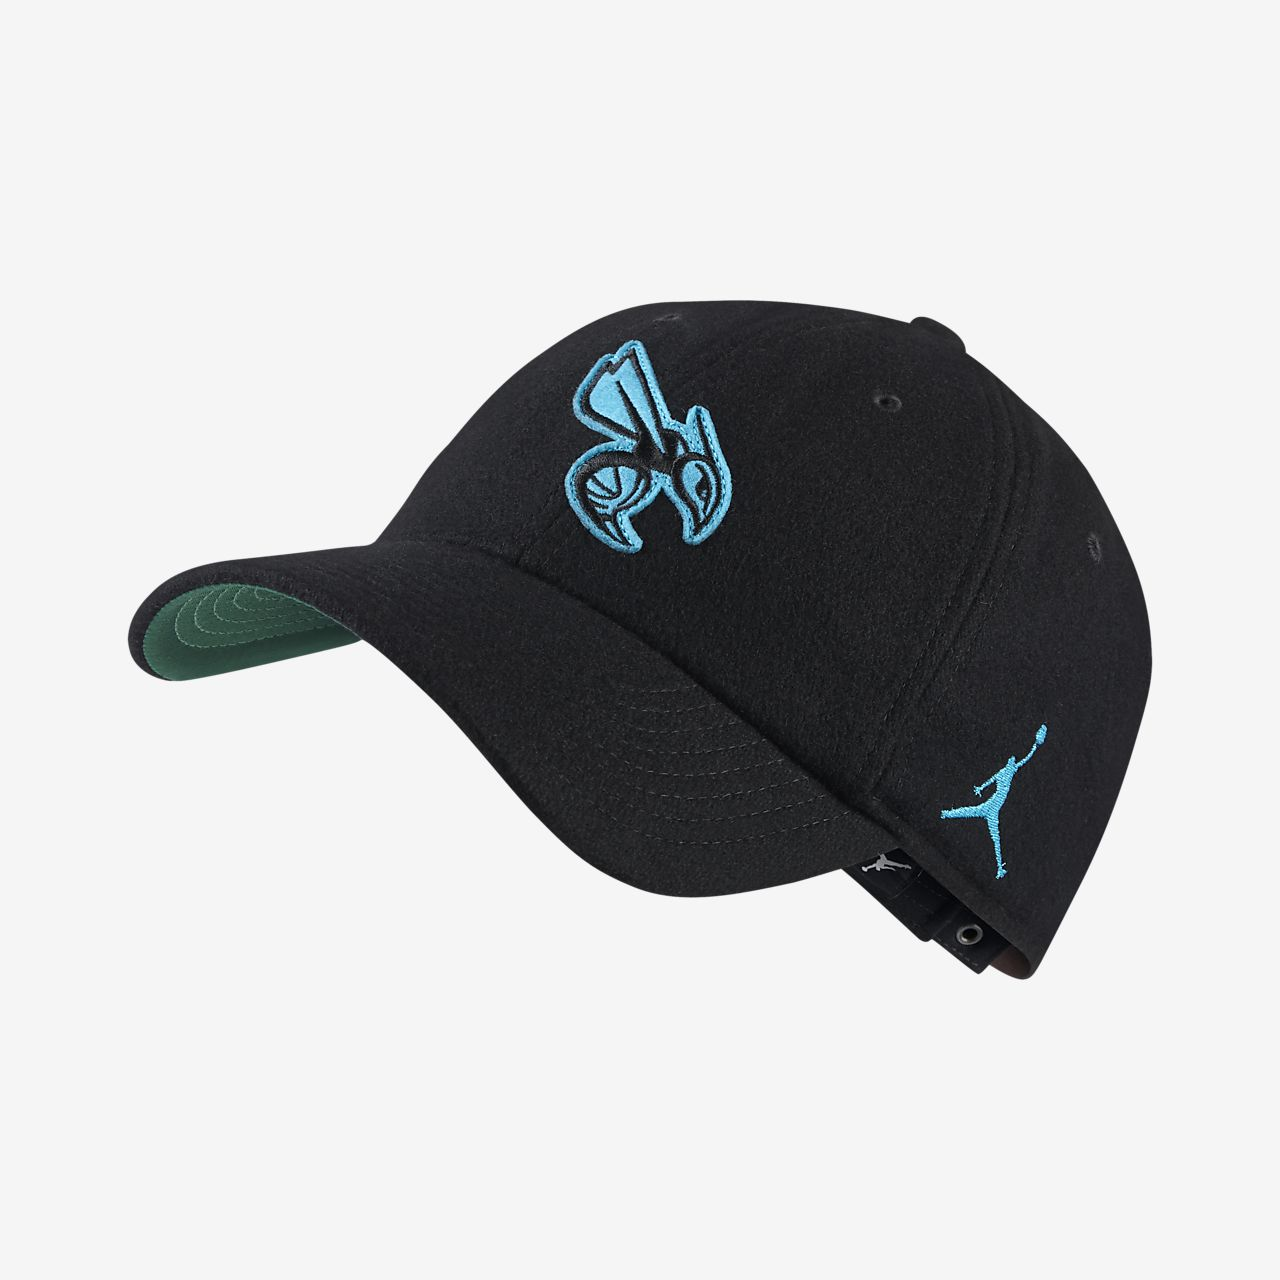 Acquista cappello di lana air jordan - OFF33% sconti d344cb9dc1c3